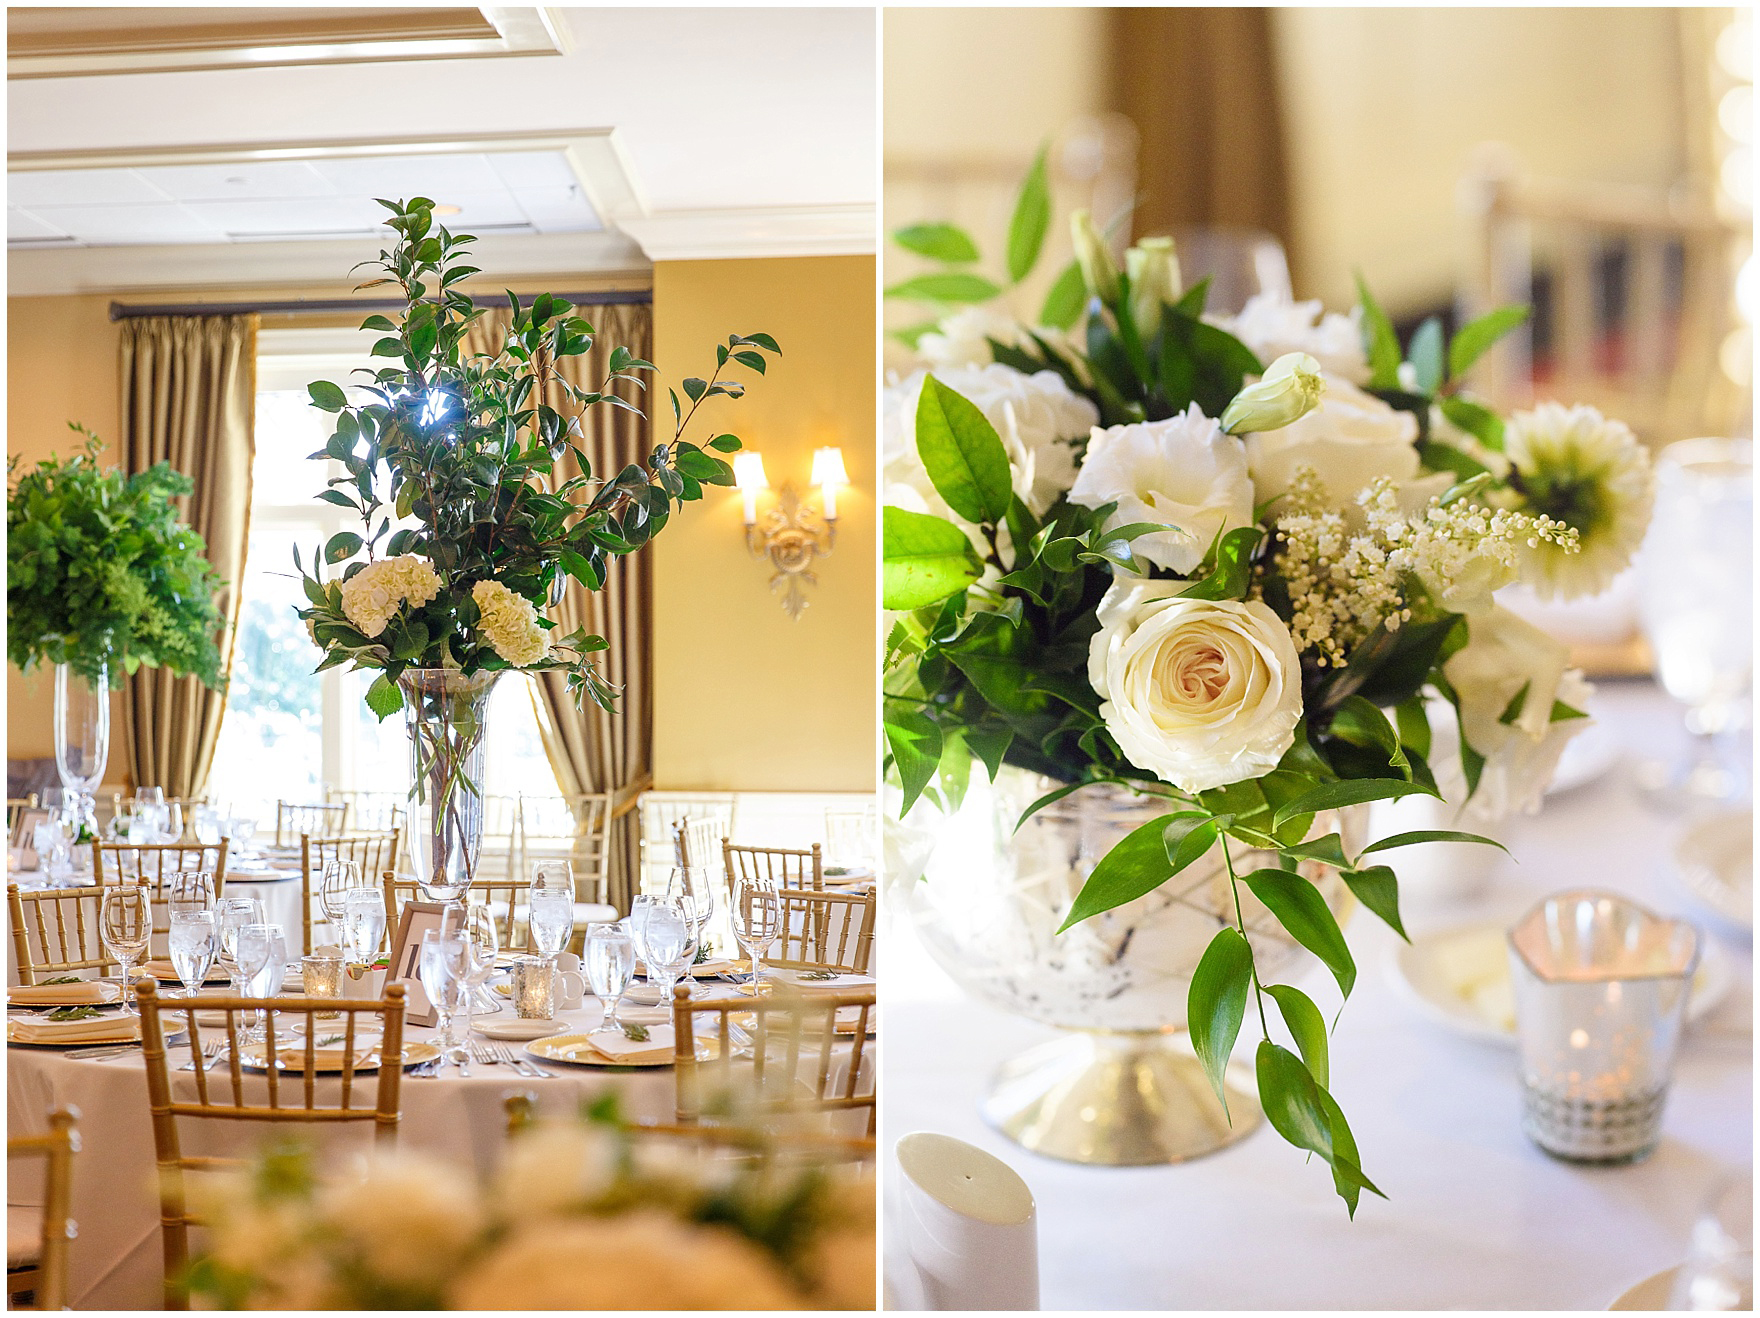 Ivory and green centerpieces by Flowers for Dreams during a Butterfield Country Club wedding.